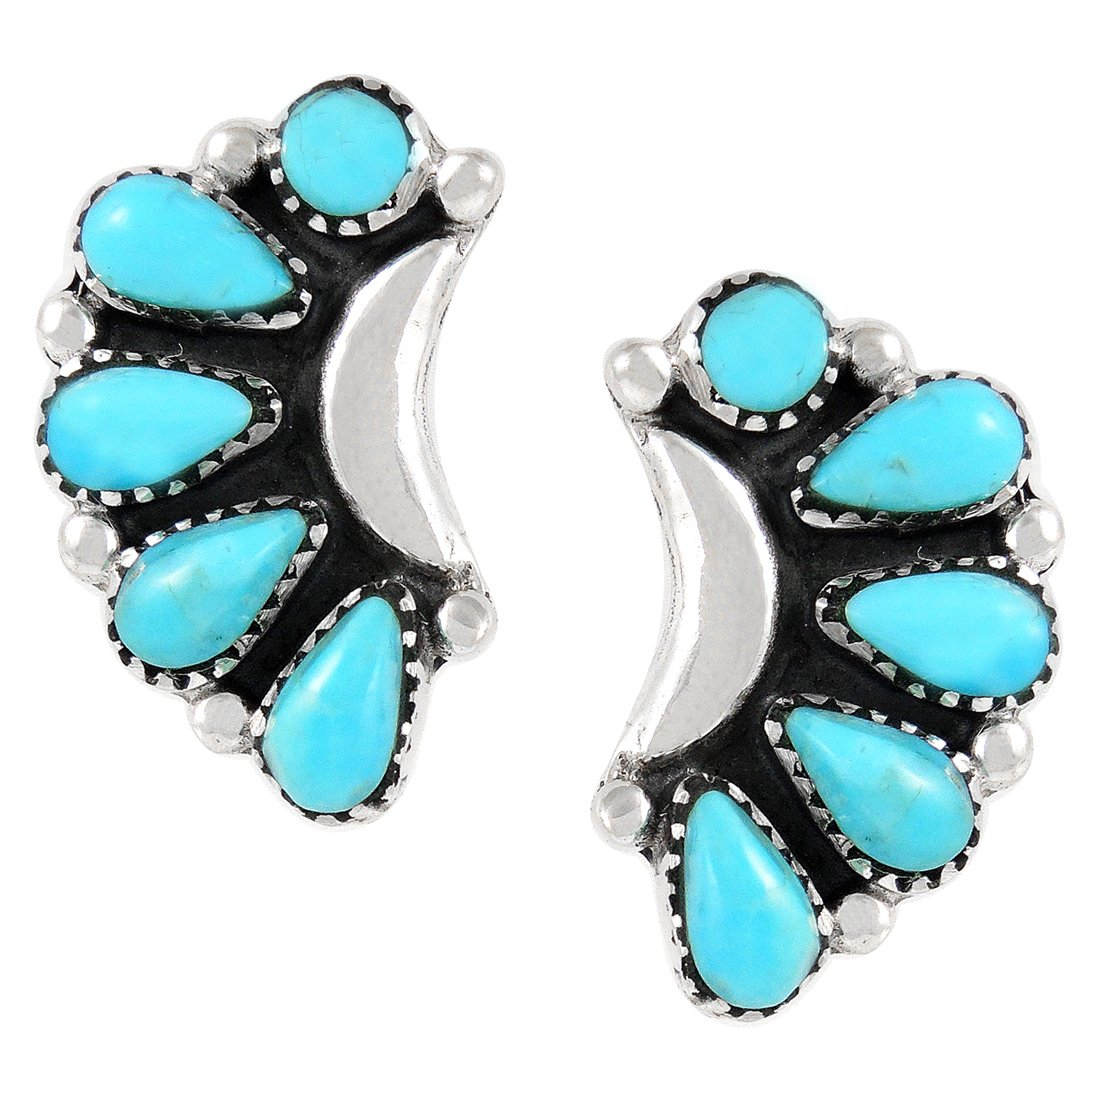 Turquoise Earrings 925 Sterling Silver Genuine Turquoise (SELECT style) (Blossoms)